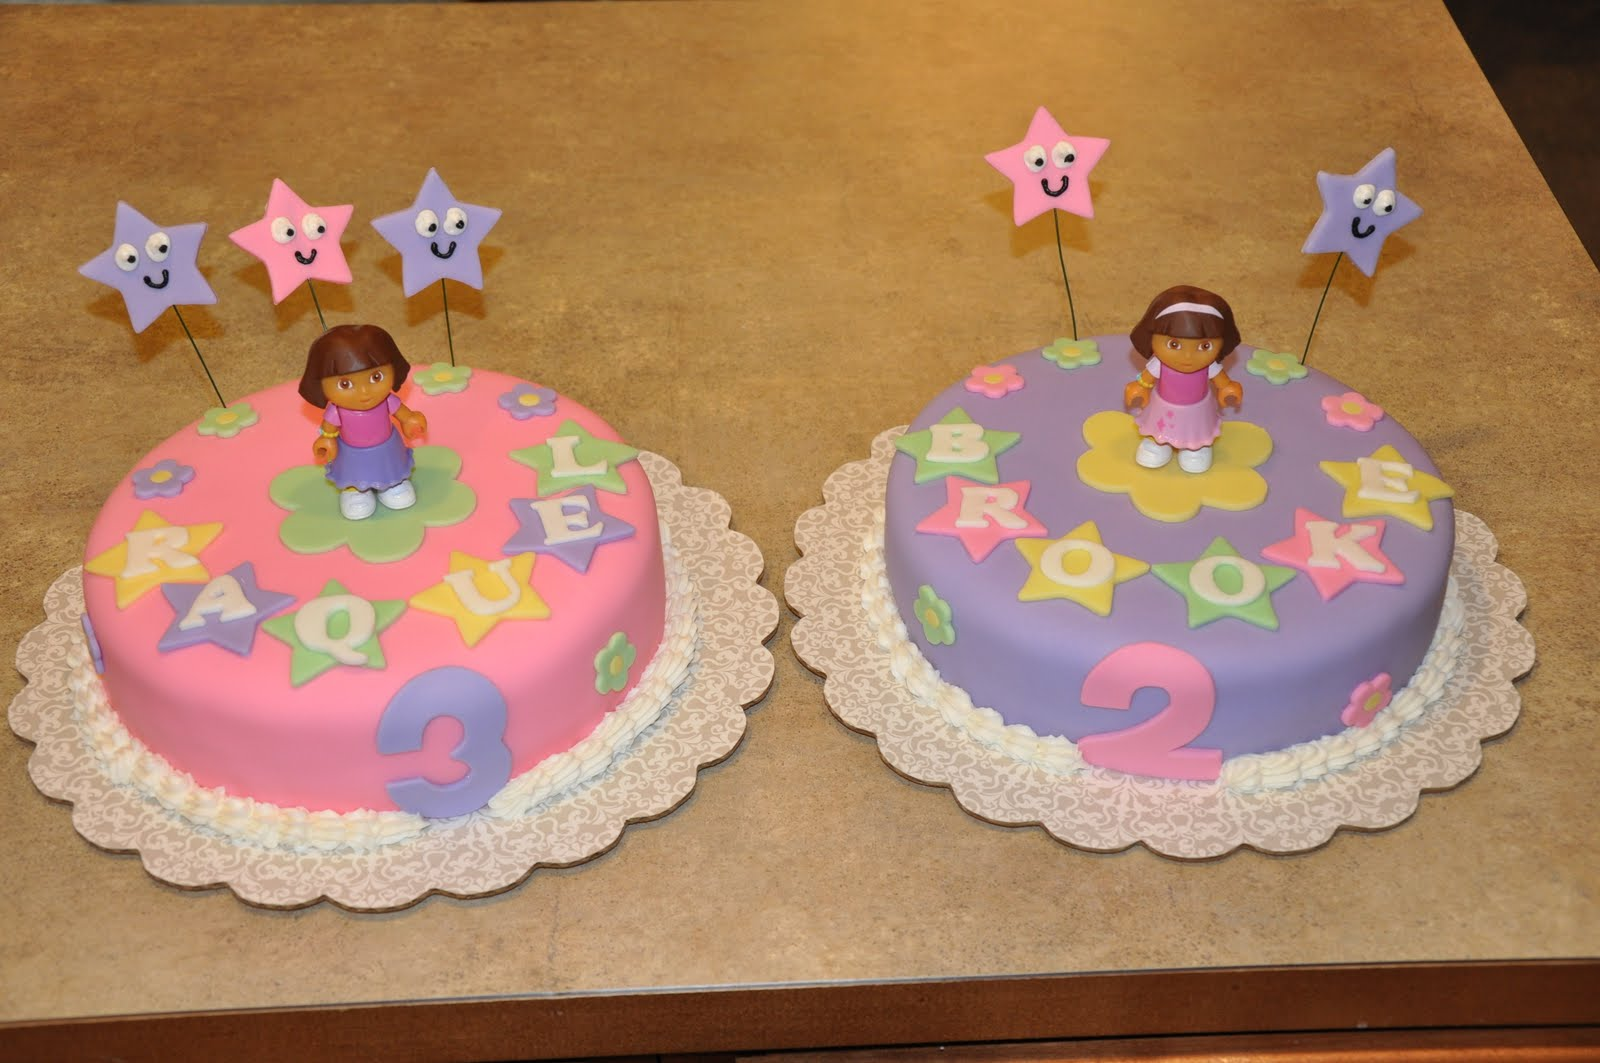 Cake Designs Dora The Explorer : Cake Creations by Christina: Dora the Explorer Birthday Cakes